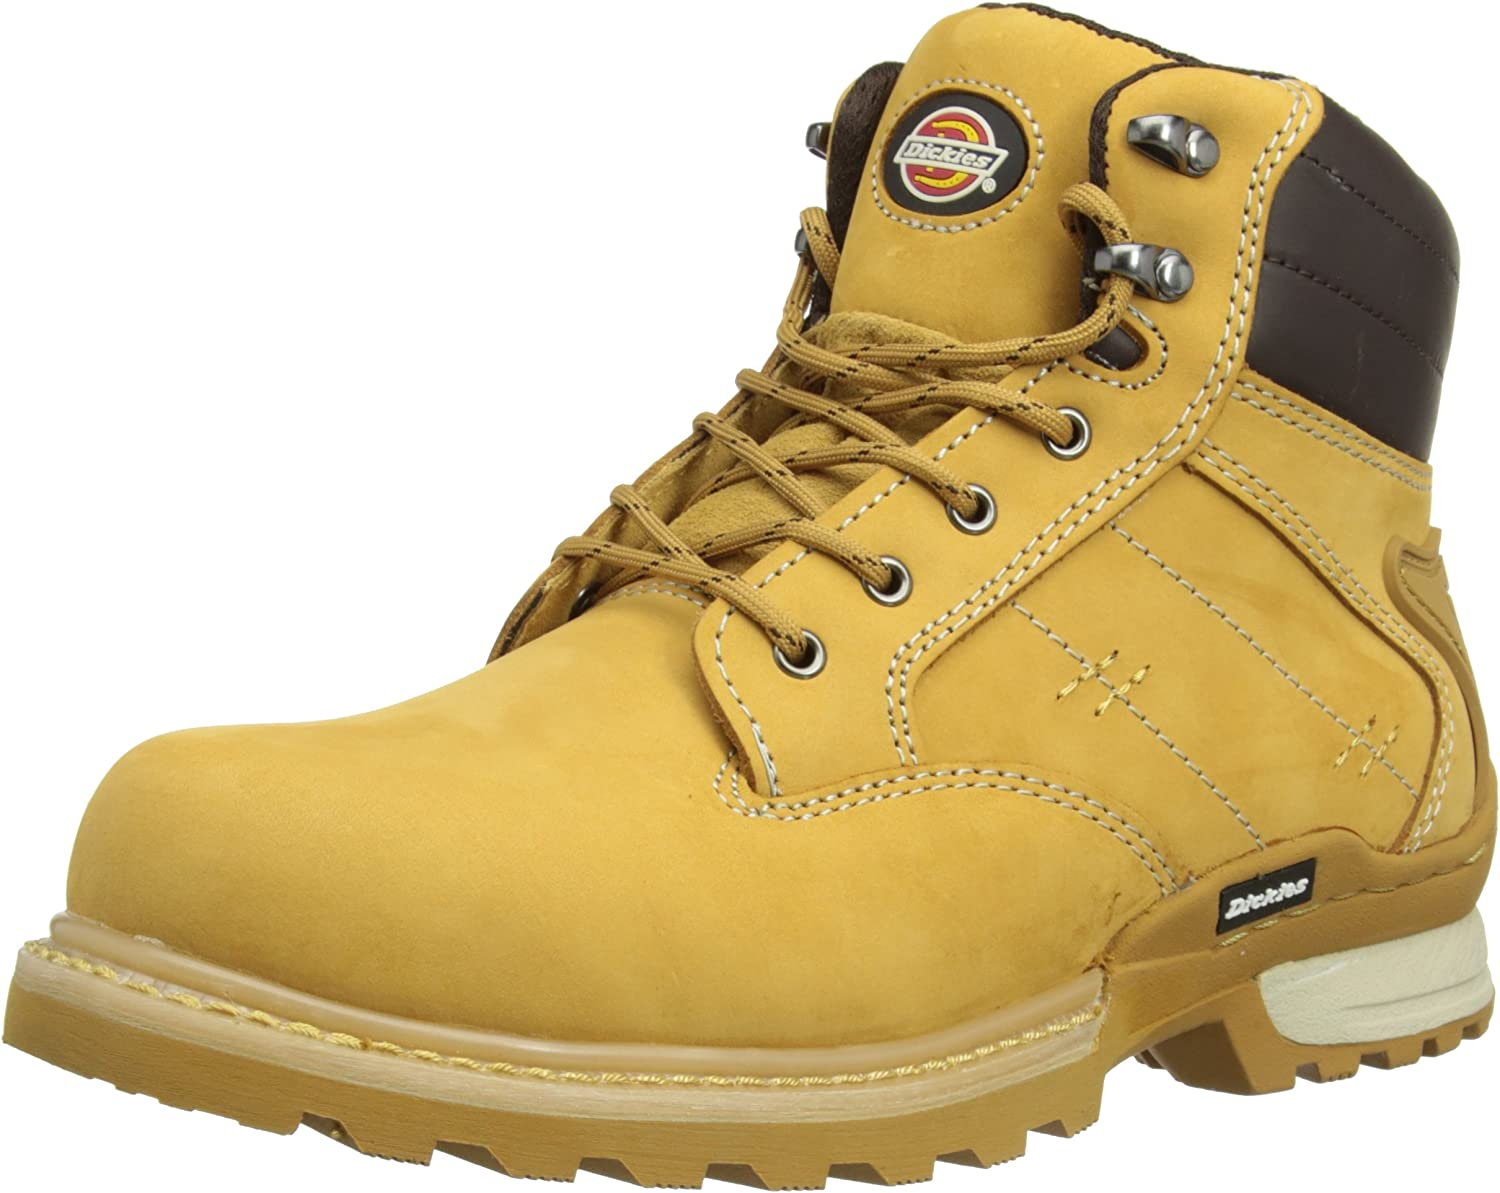 Dickies Canton Safety Boot Leather Steel Toe Work Workwear FD9209